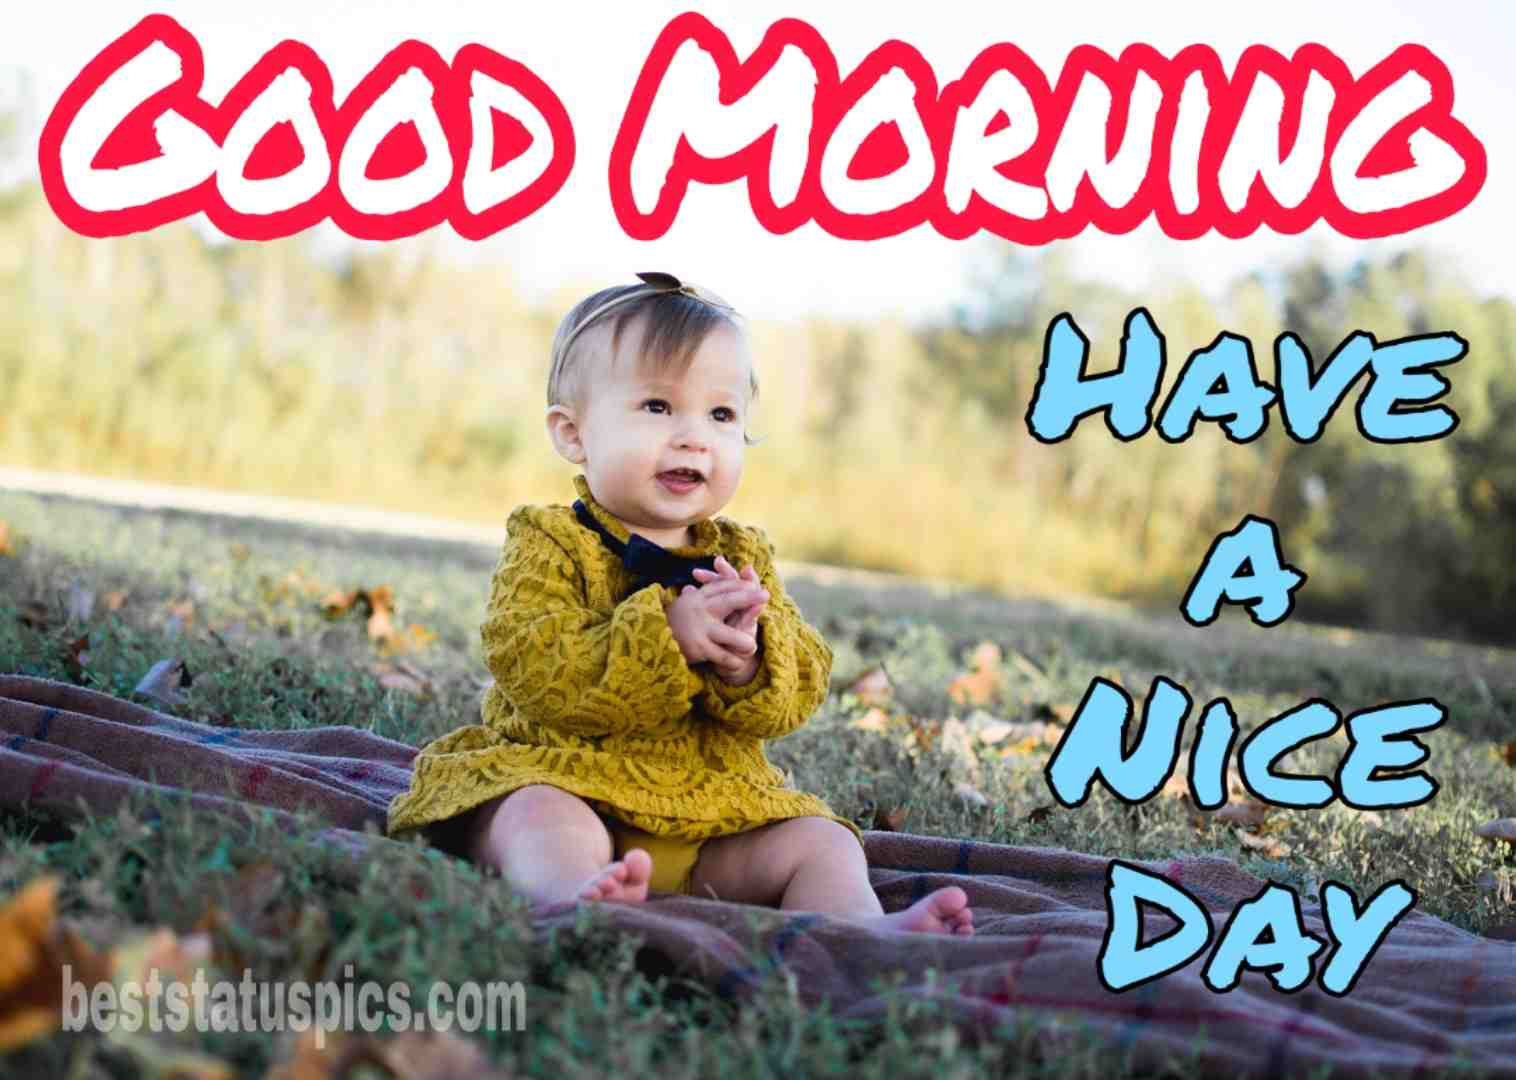 Good morning cute baby girl images whatsapp